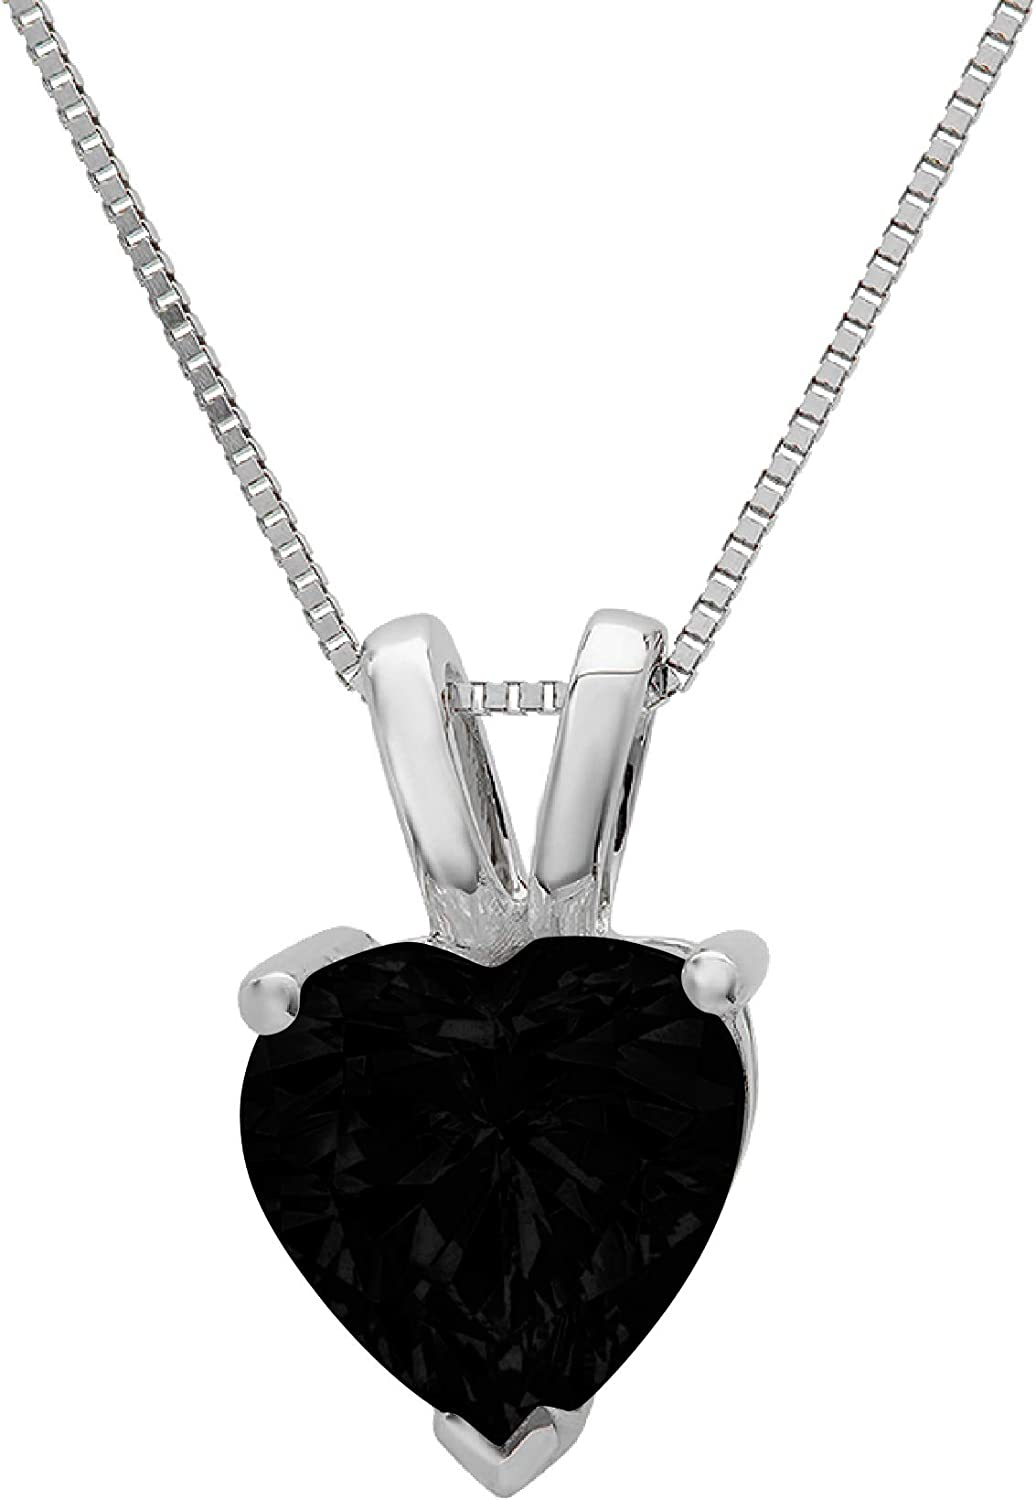 0.55 ct Brilliant Heart Cut Flawless Genuine Natural Black Onyx VVS1 Solitaire Designer Pendant Necklace With 16